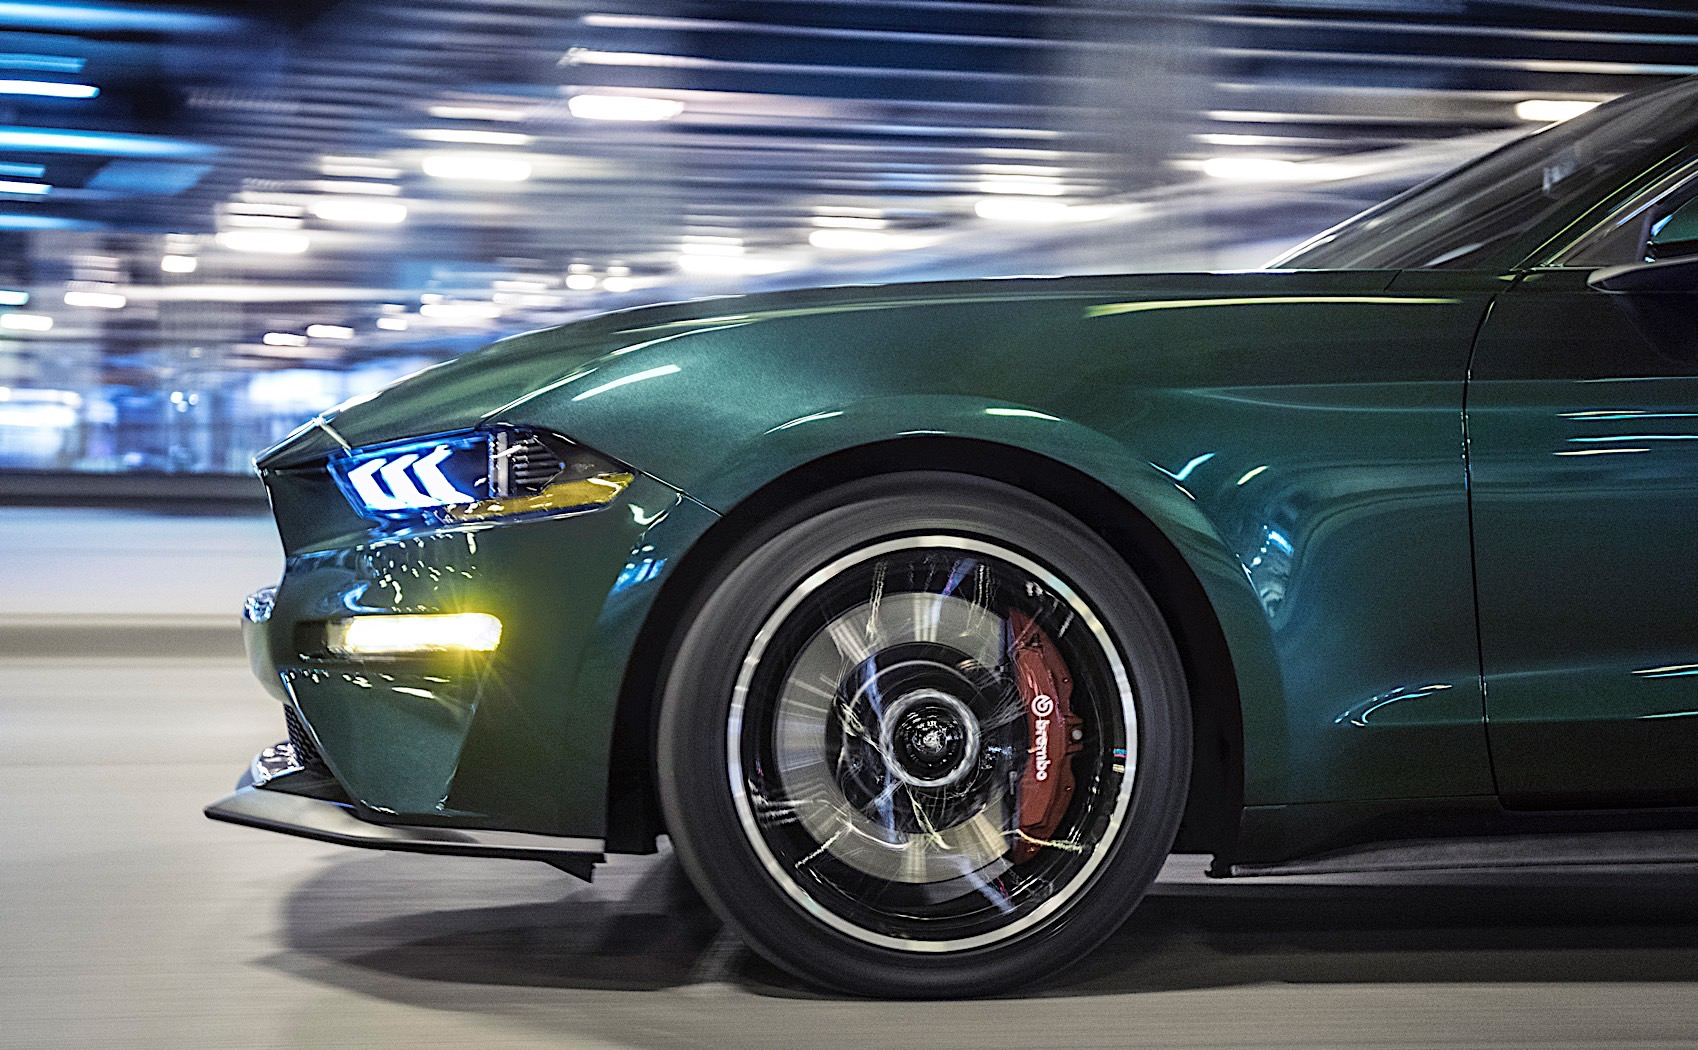 You can order the 2019 Ford Mustang Bullitt now